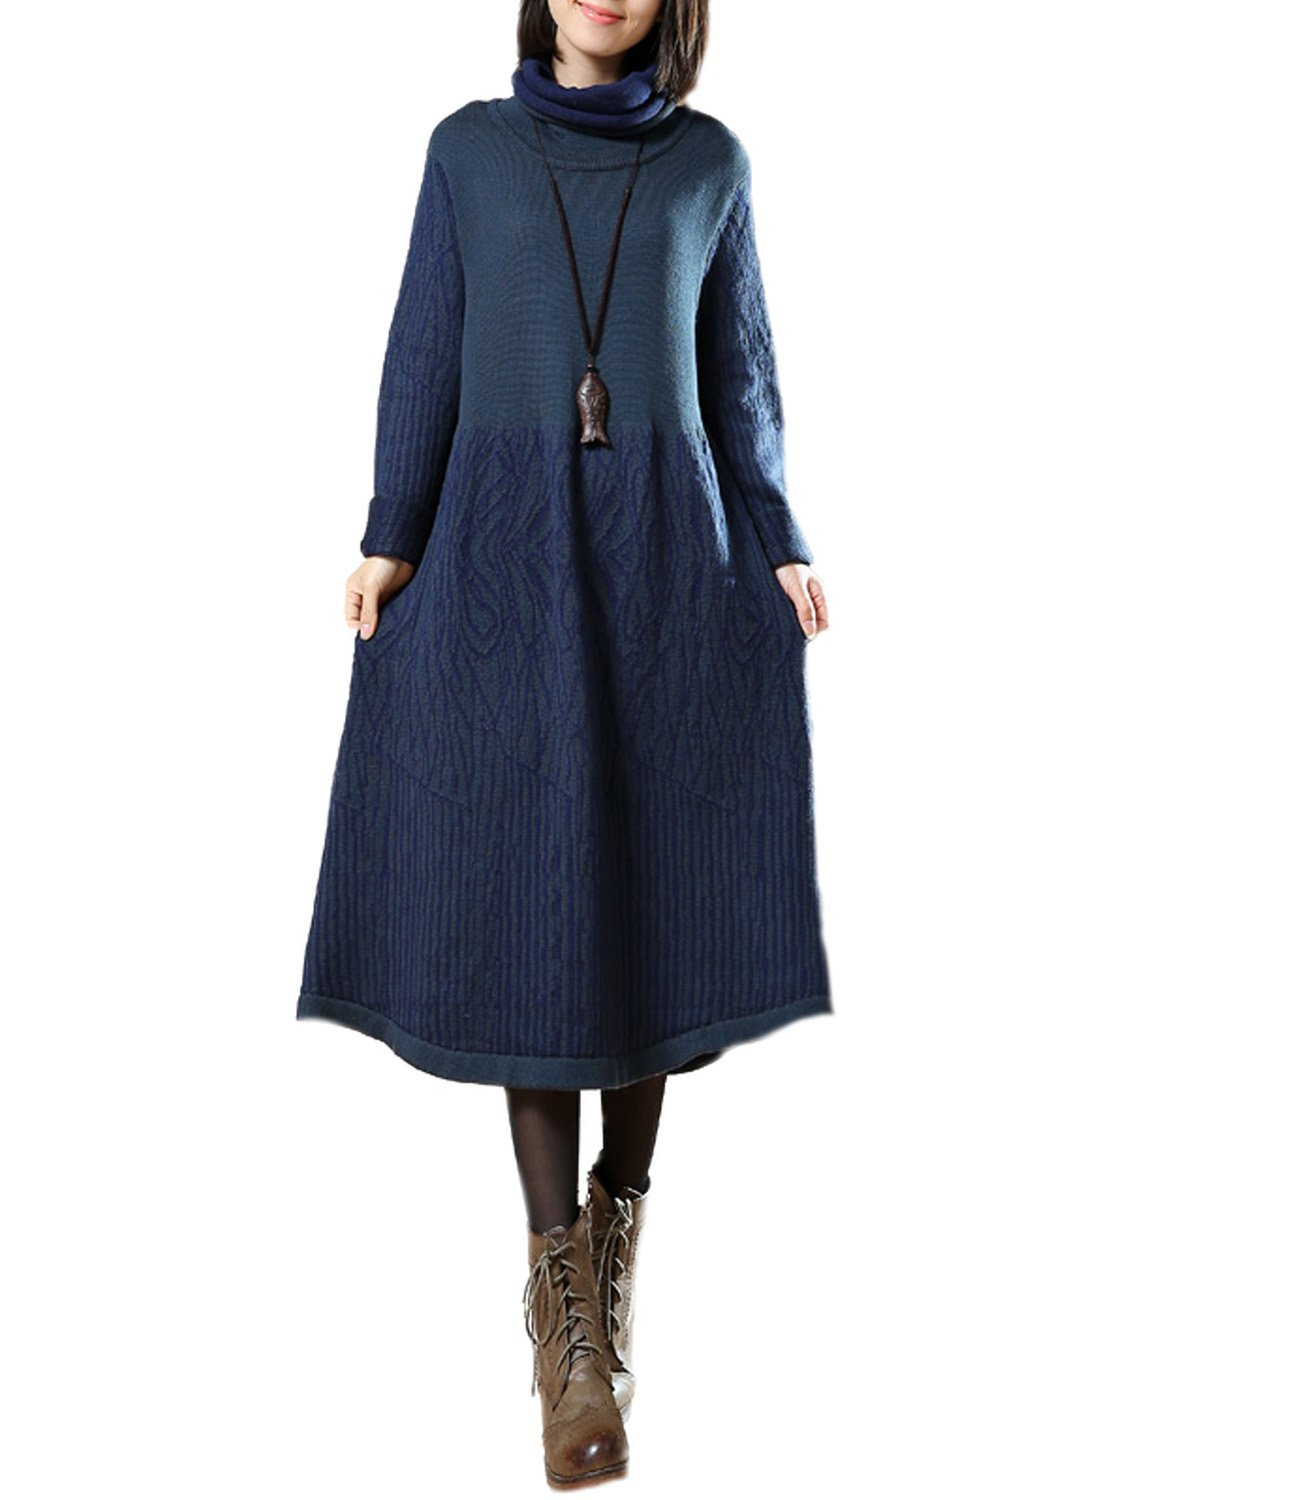 Medeshe Women Winter Turtle Neck Long Sleeve Sweater Knitted Dress (S/M/L, Blue)